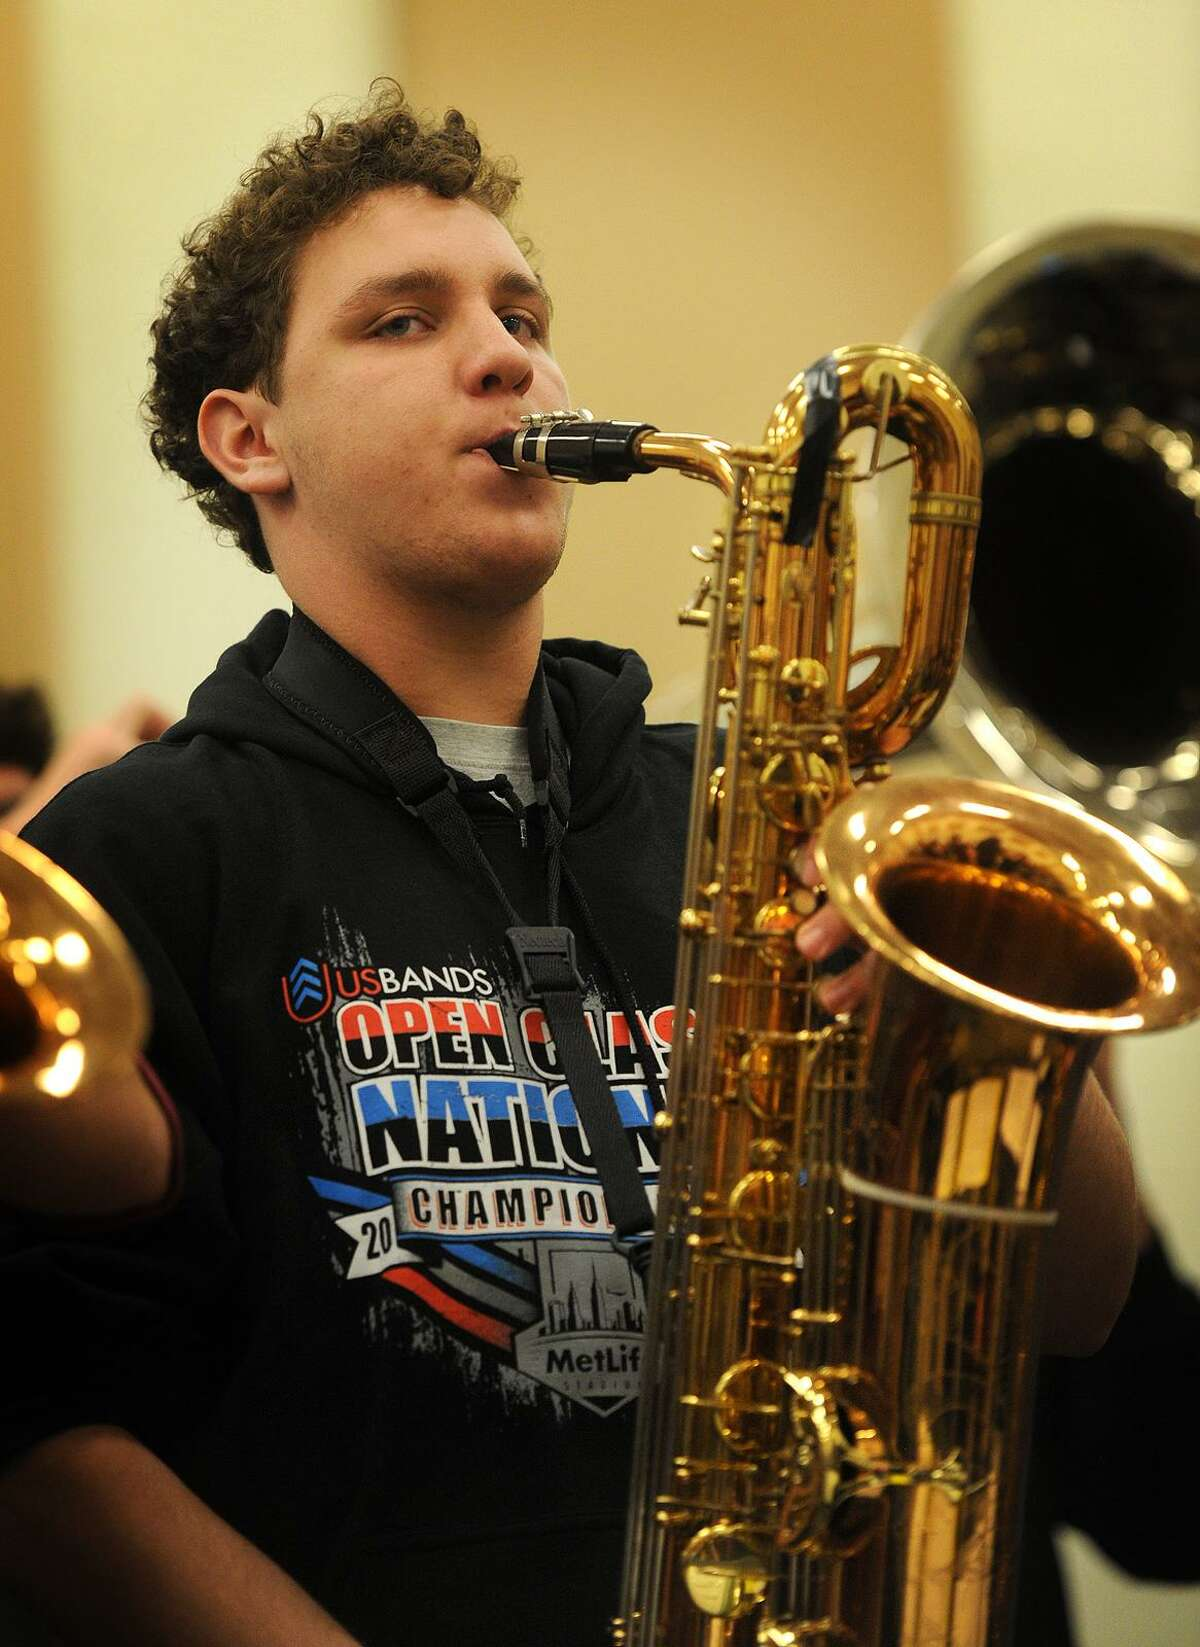 Baritone saxophone player Owen Hallock, 16, rehearses with the Trumbull High School Marching Band for their upcoming performance in the Stamford Thanksgiving Day Parade at the school in Trumbull, Conn. on Wednesday, November 16, 2016. The band won the U.S. Bands Class 6 Open National band competition last Saturday, November 12, at Met Life Stadium in New Jersey.